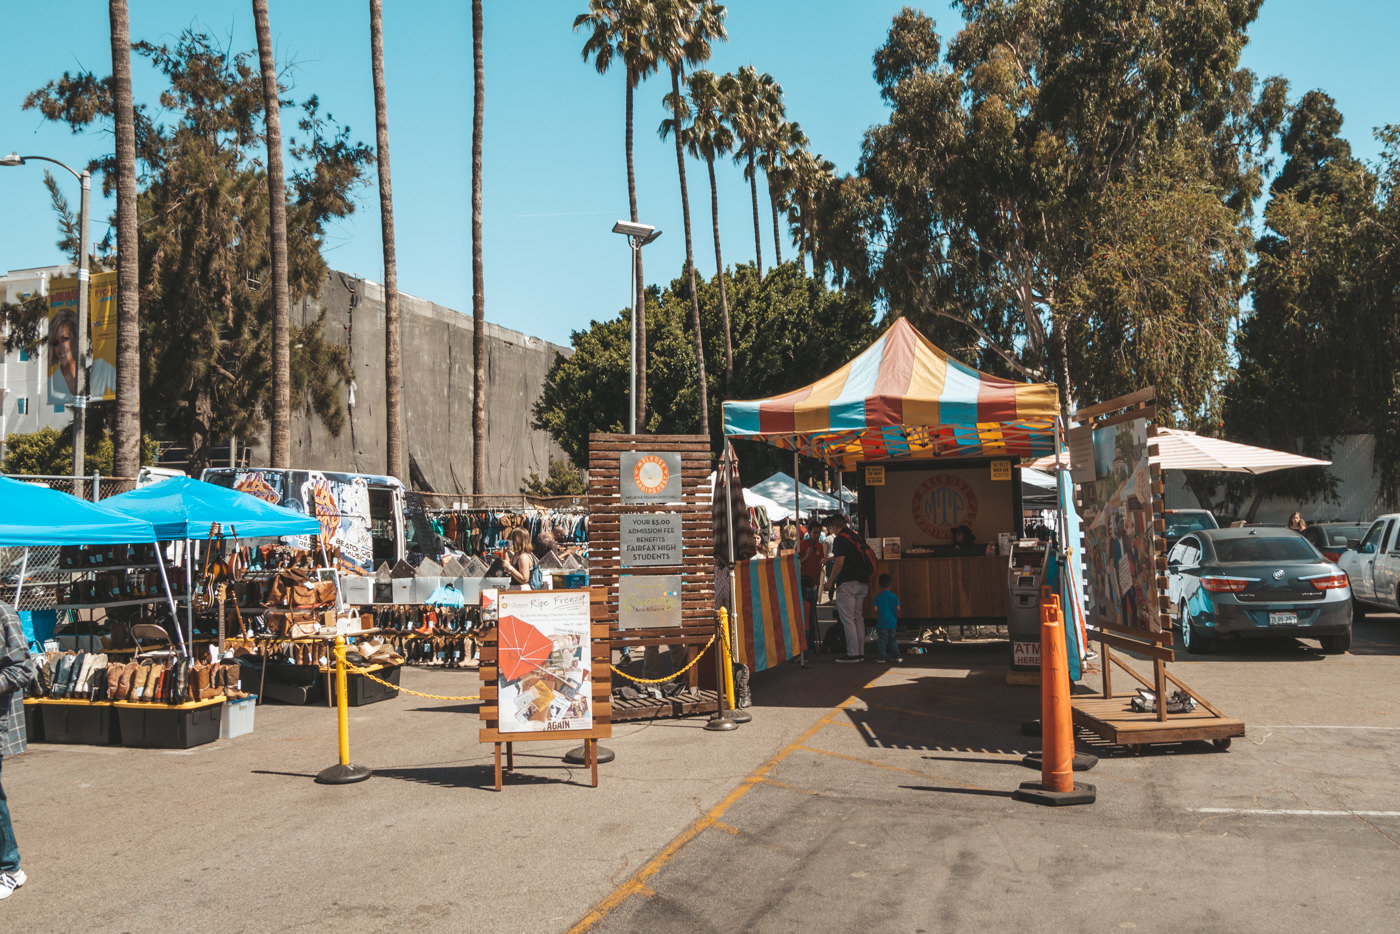 Flohmarkt in Los Angeles